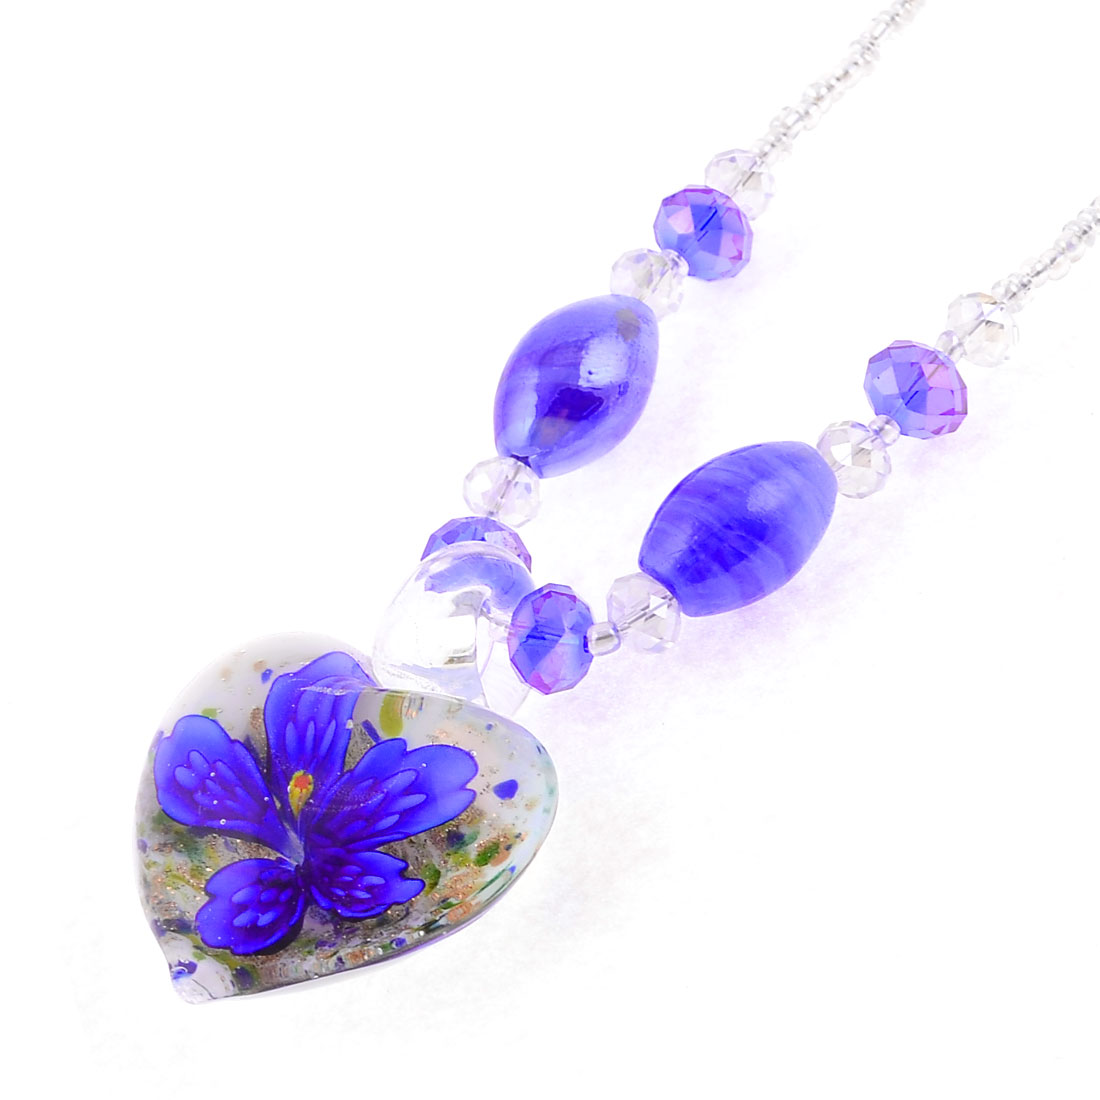 Lady Woman Clear Plastic Bead Glass Floral Heart Pendant Screw Clasp Necklace